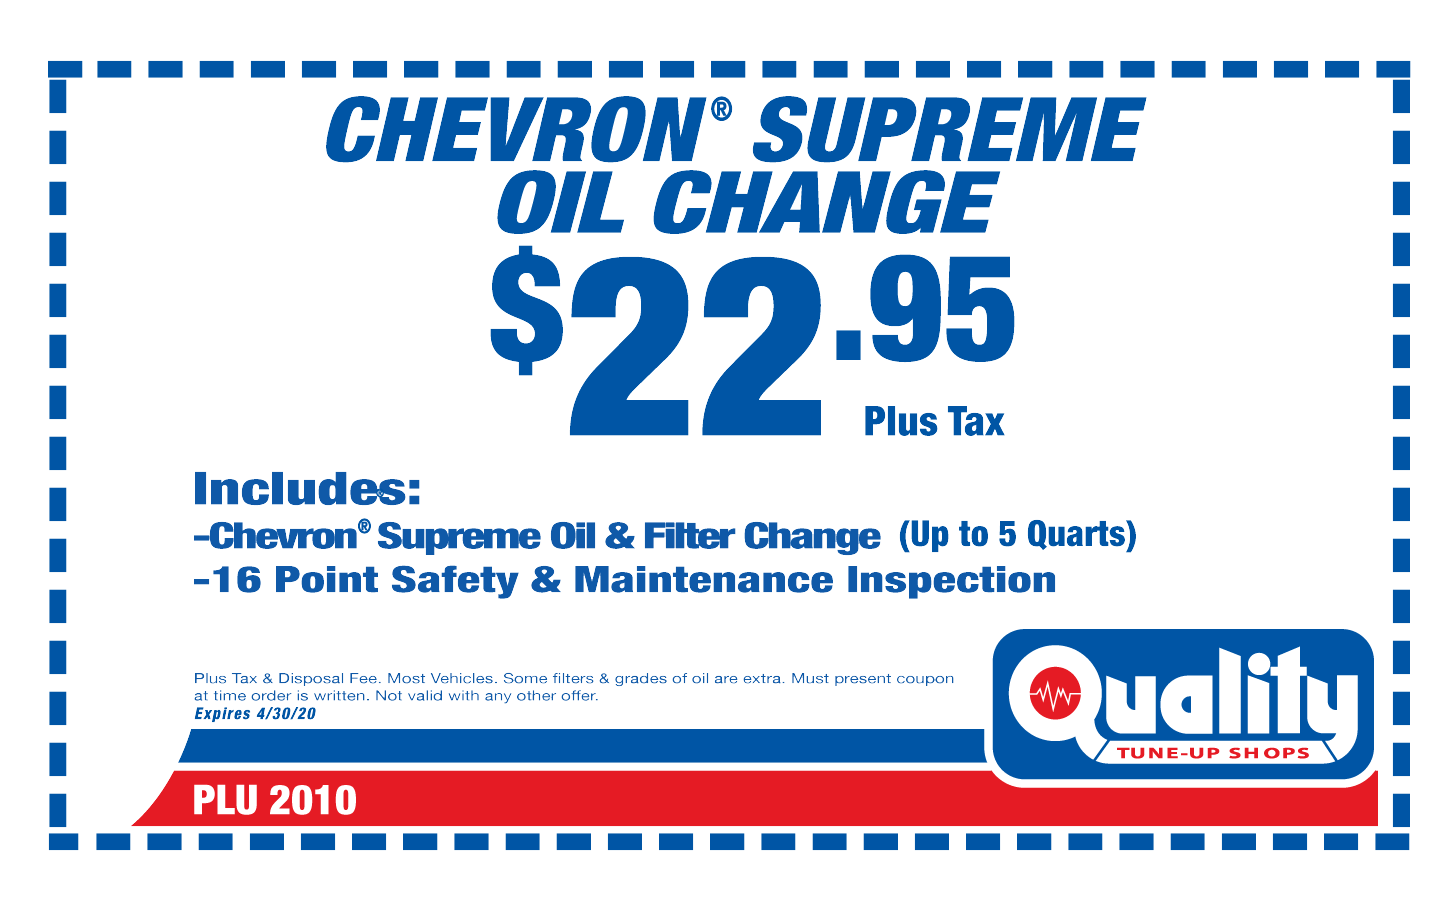 Chevron Supreme Oil Change